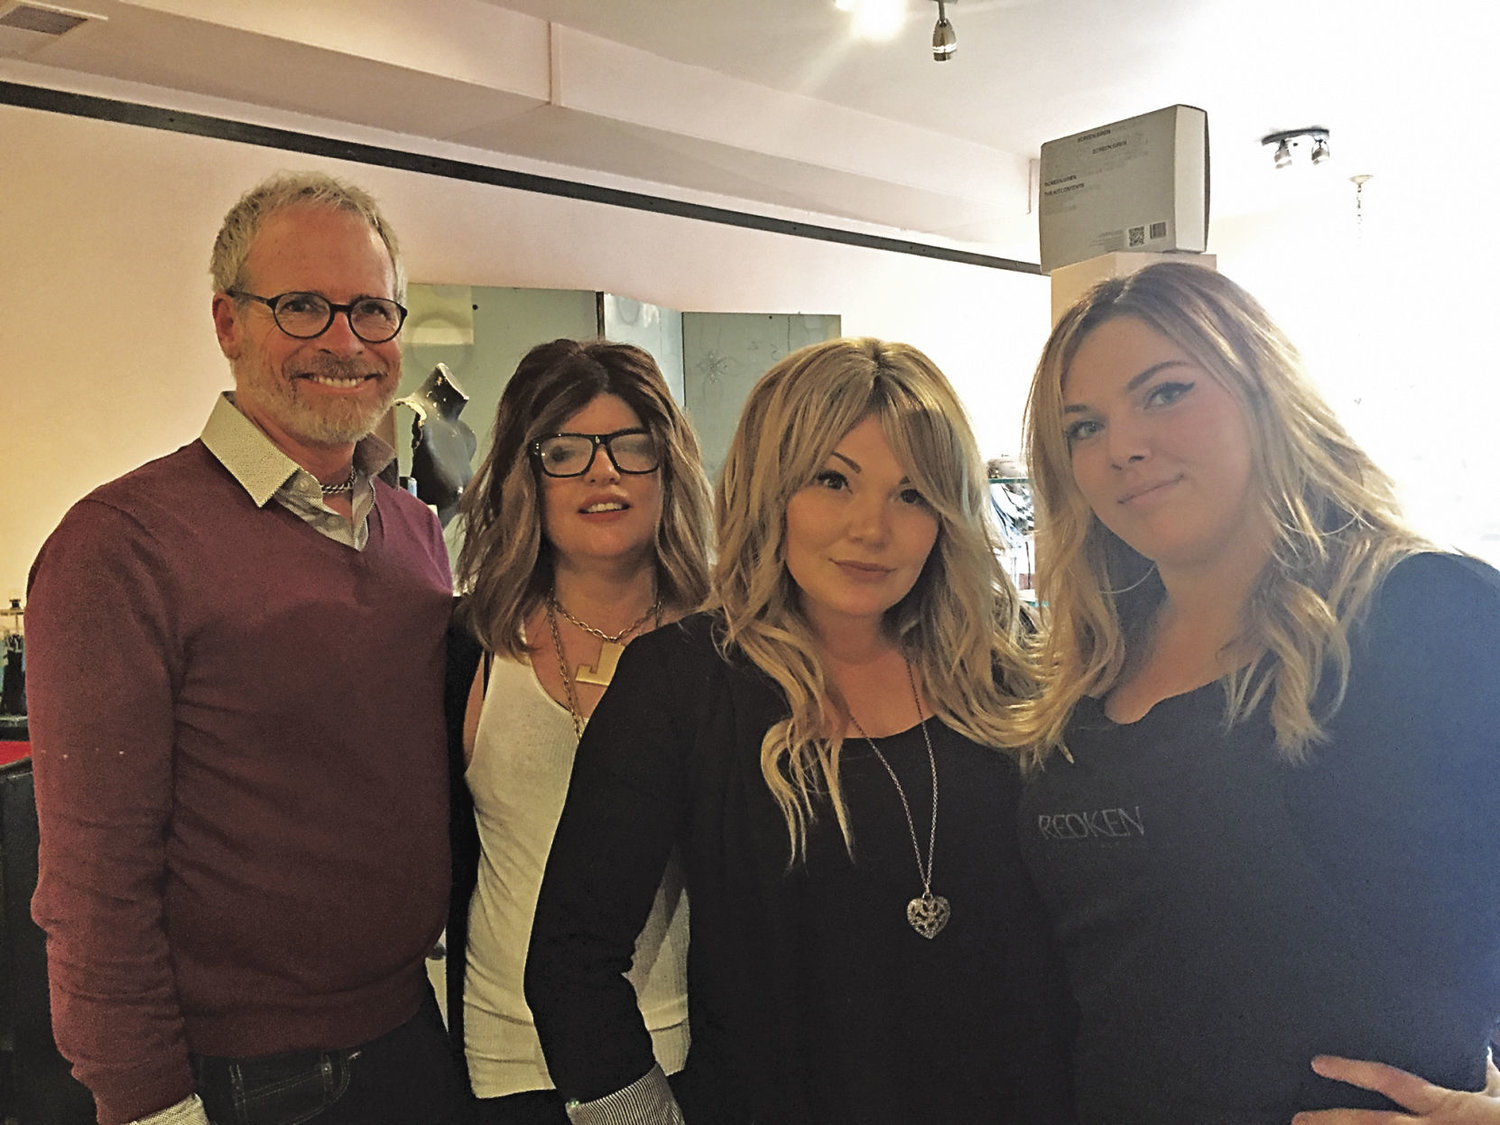 The staff at Salon Delucca in uptown Port Townsend specializes in classic styling and the most current trends, and the stylists' skills earned the salon a rating as best hair salon. Pictured are (from left) David Bellecci, Lisa Johnson, Juliet Martin (rated as best stylist/barber) and Cessna Freund.